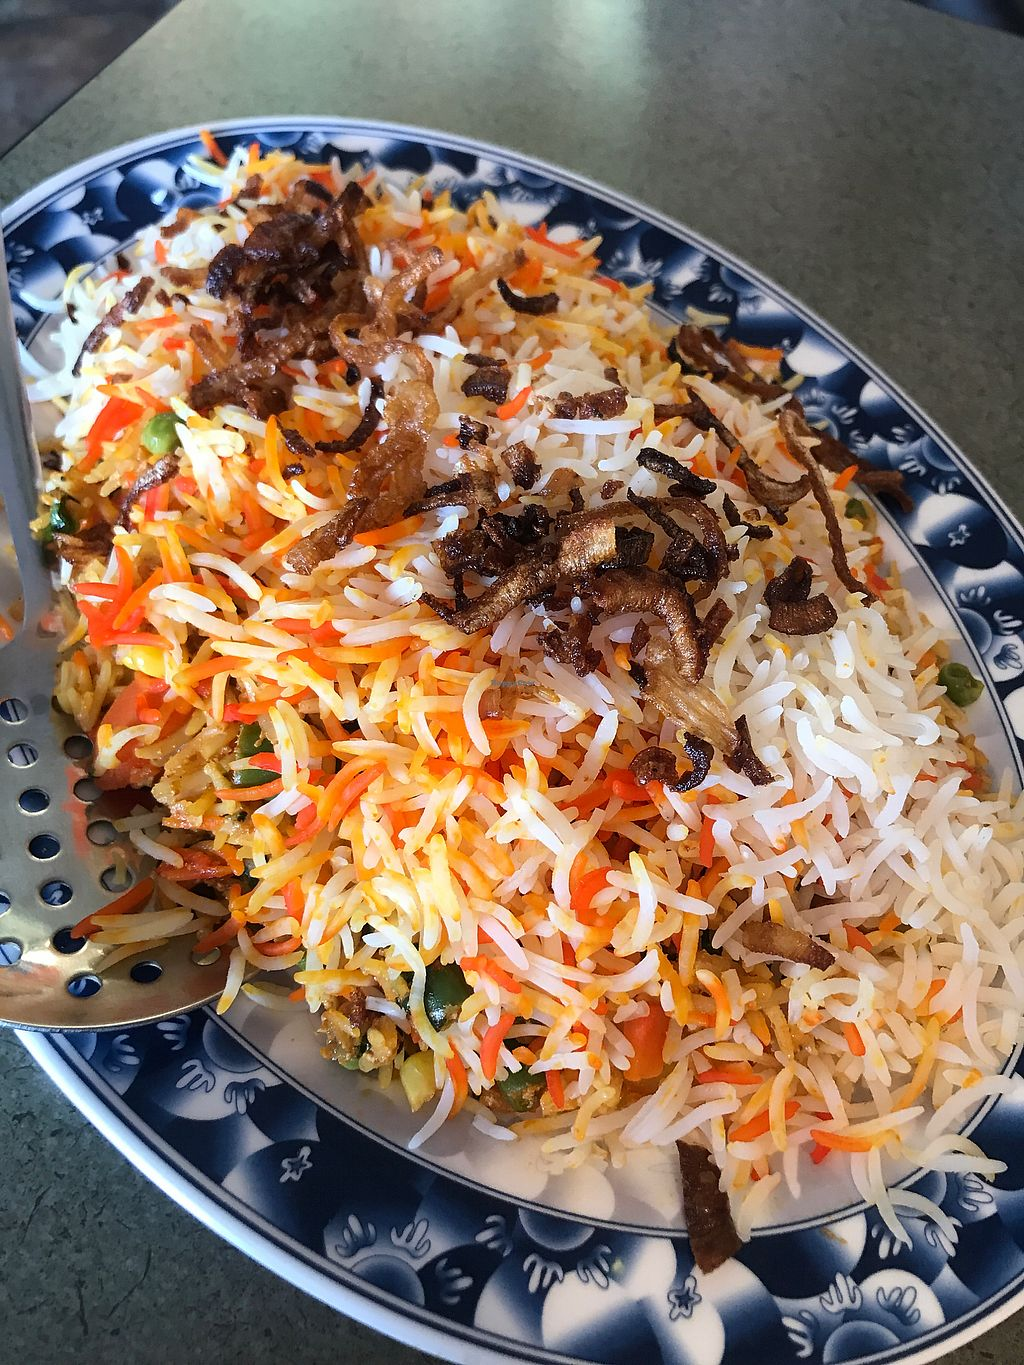 """Photo of Masala Indo-Pak Cuisine  by <a href=""""/members/profile/VickyLee"""">VickyLee</a> <br/>Rice biryani vegetable  <br/> February 11, 2018  - <a href='/contact/abuse/image/100258/357704'>Report</a>"""